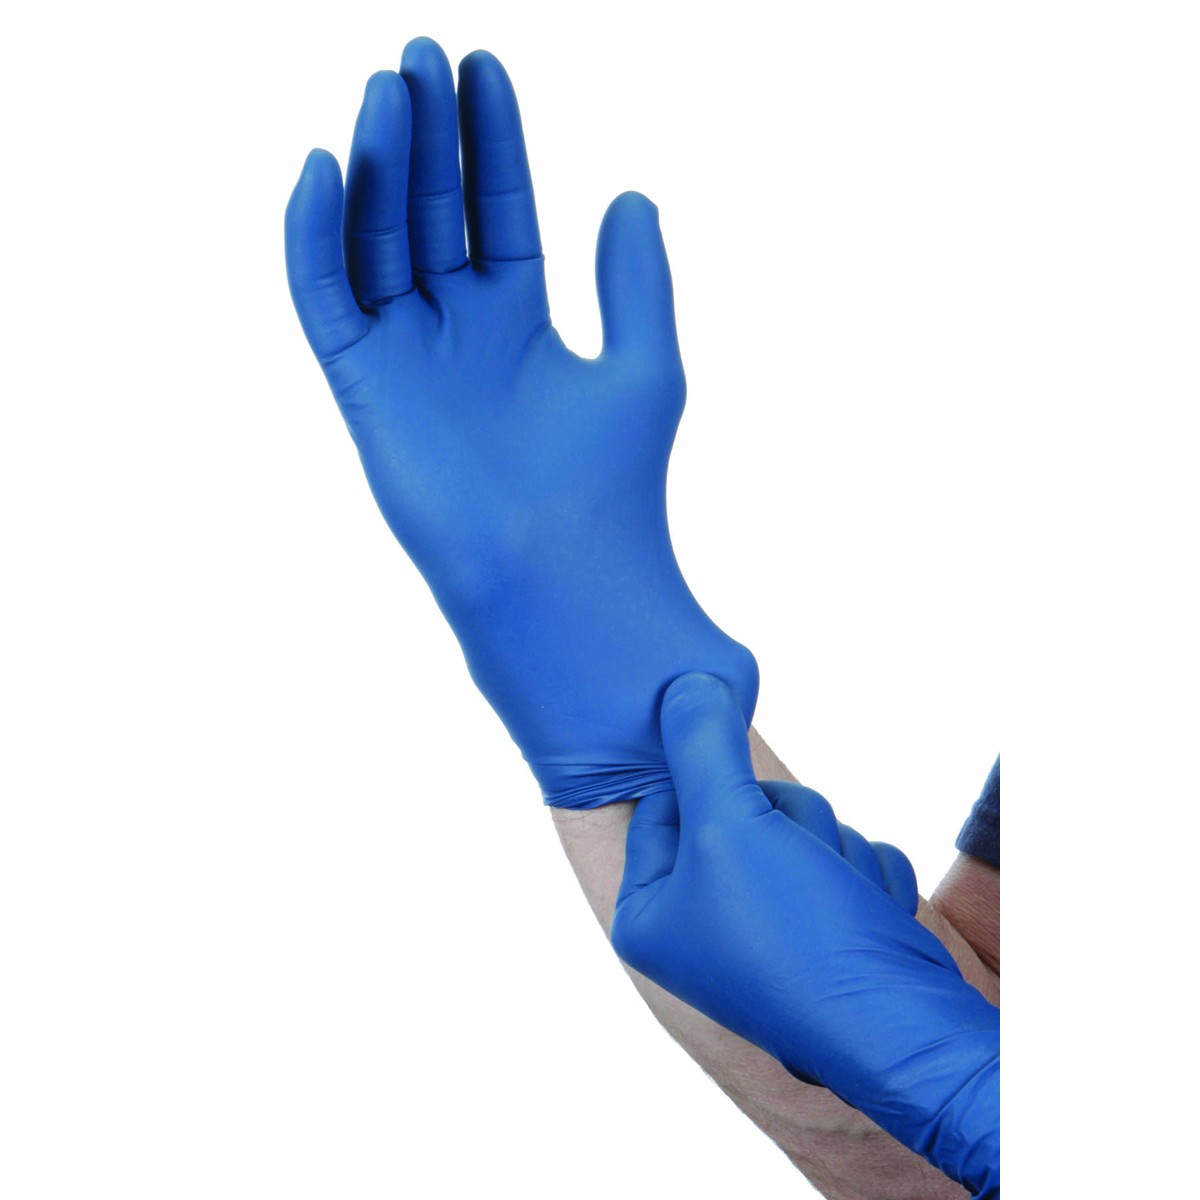 Do You Need To Wear Gloves While Building Your PC?